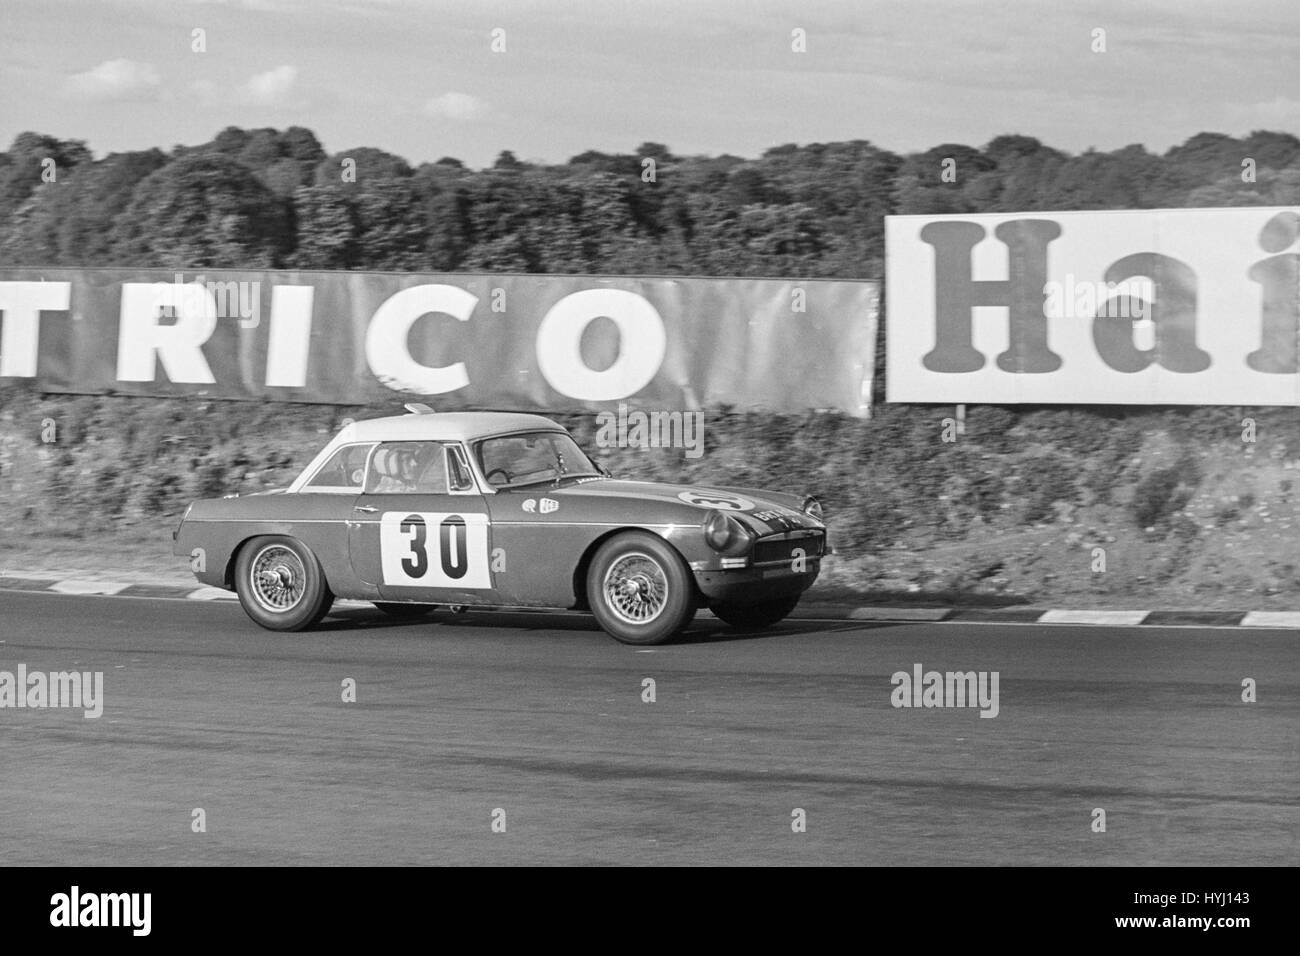 Mgb Racing Stock Photos & Mgb Racing Stock Images - Alamy